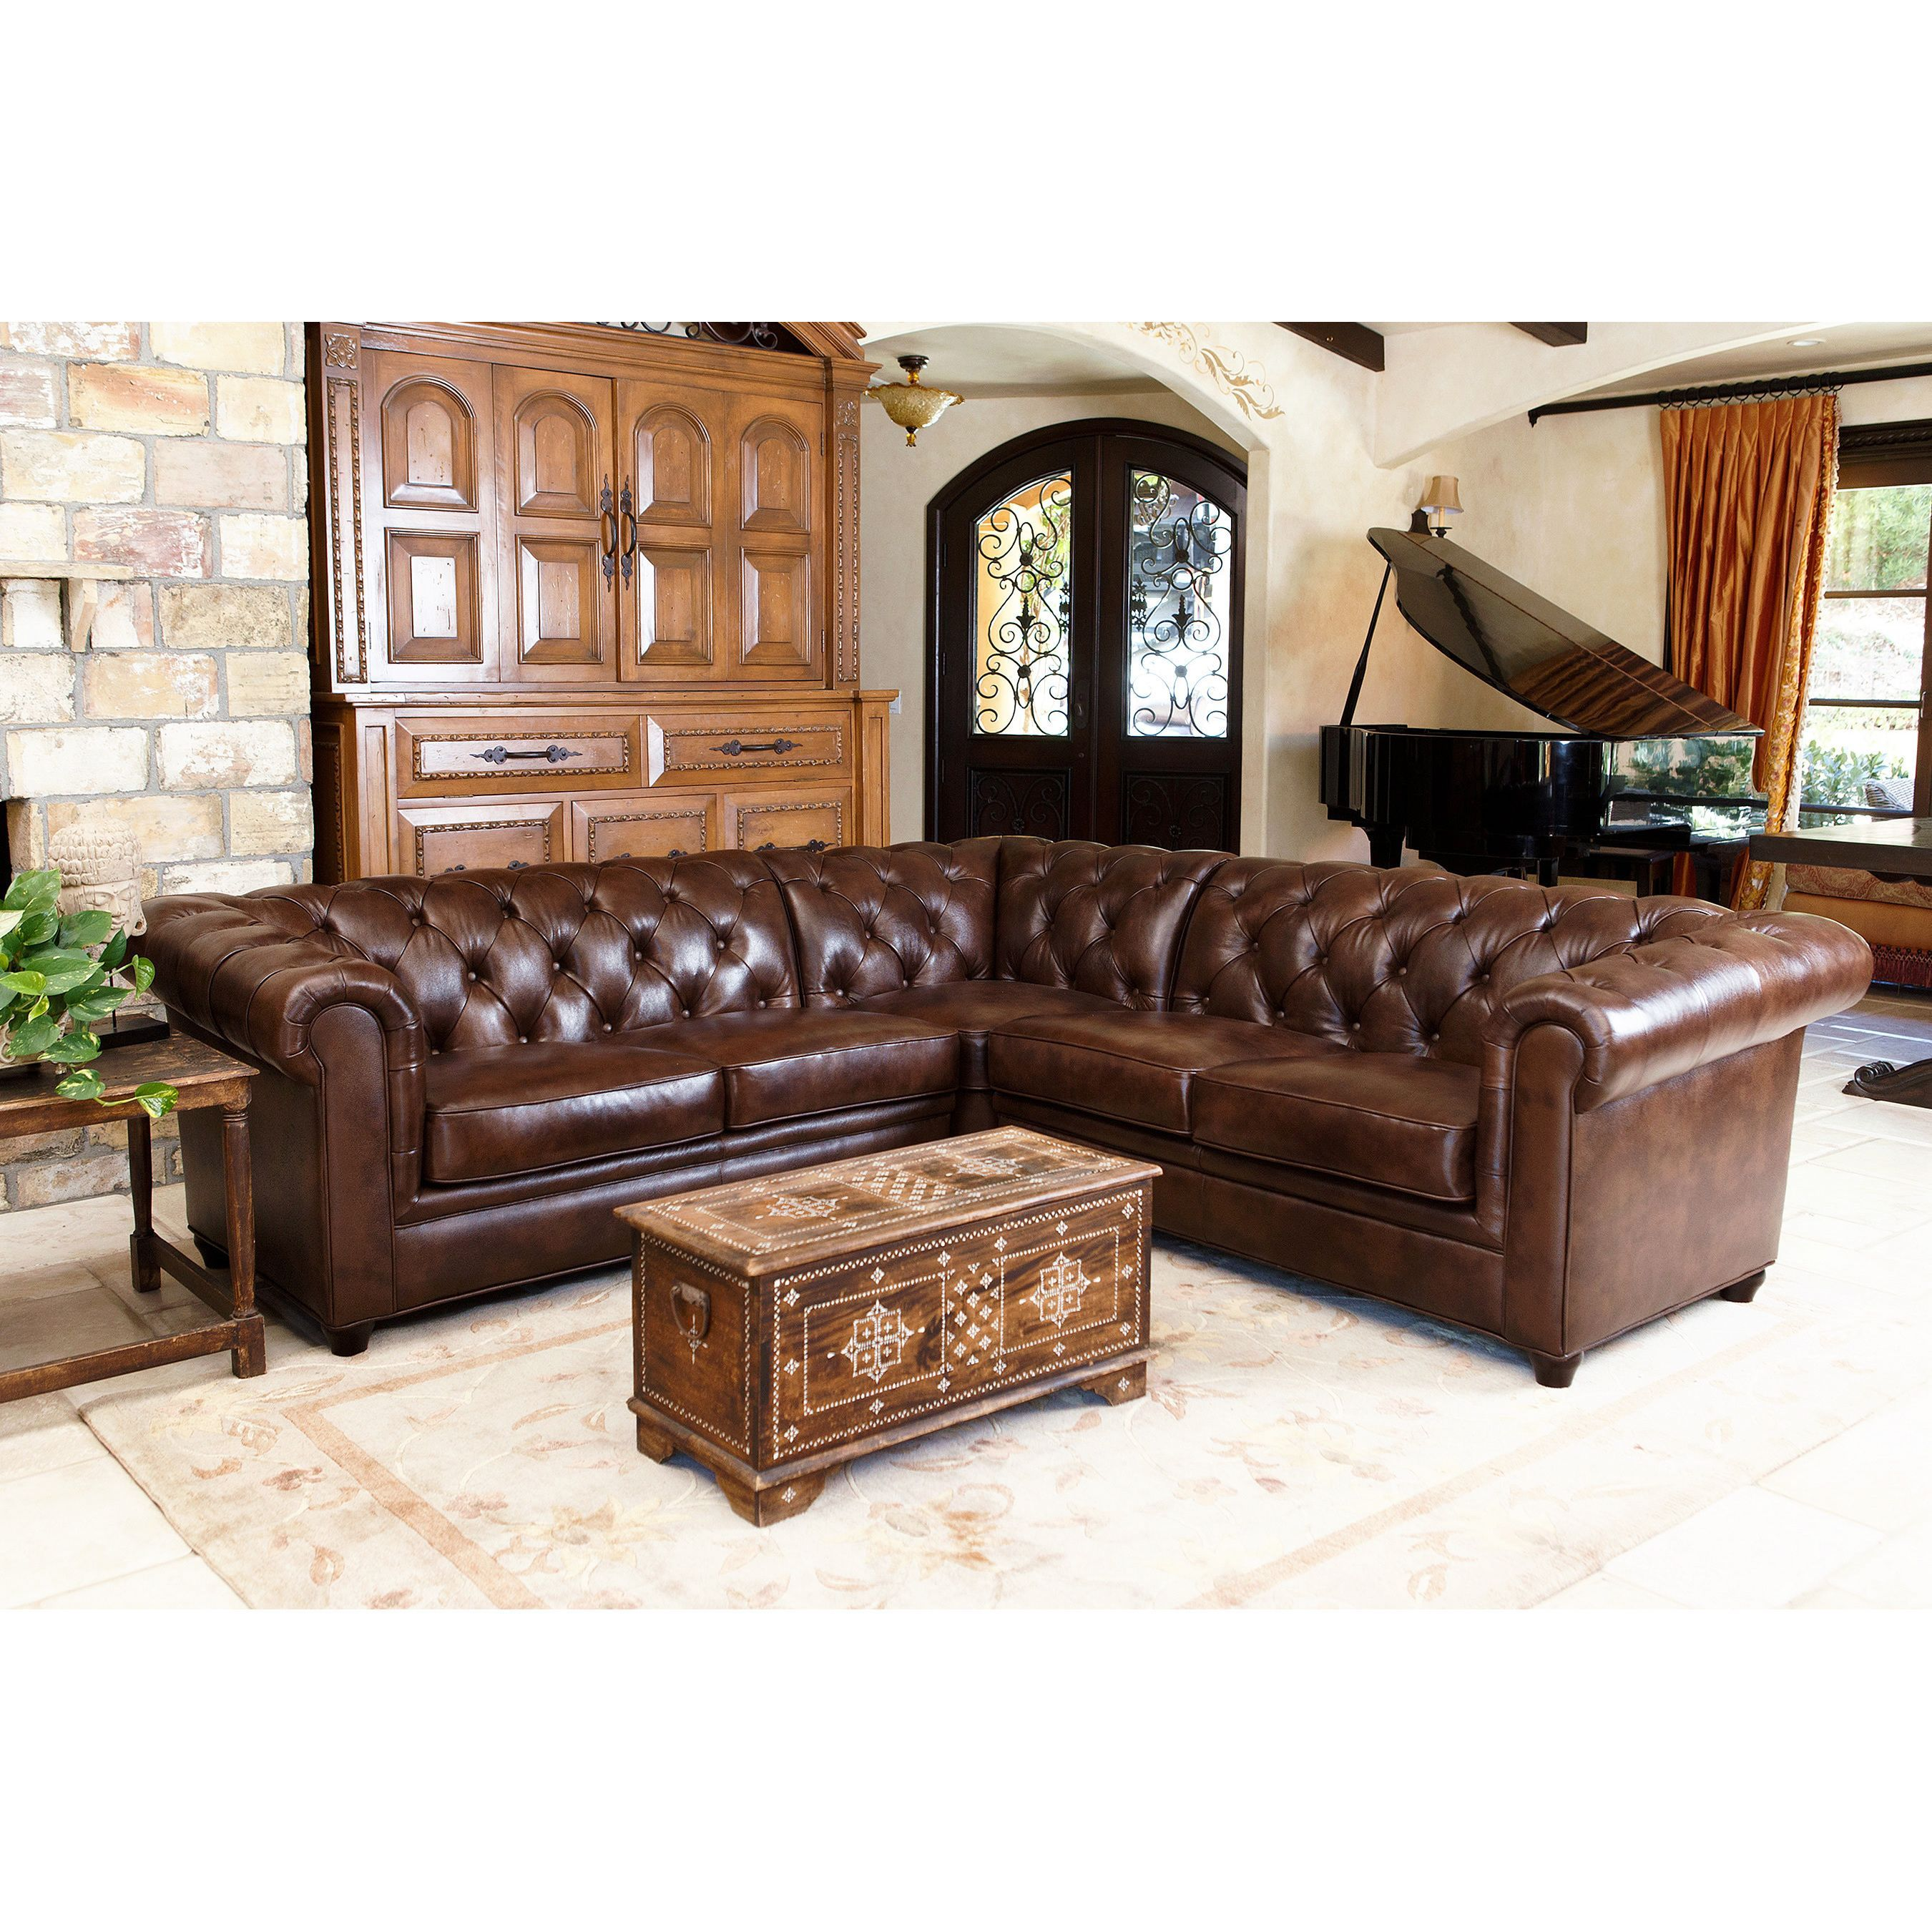 Fantastic Abbyson Tuscan Tufted Top Grain Leather 3 Piece Sectional Evergreenethics Interior Chair Design Evergreenethicsorg